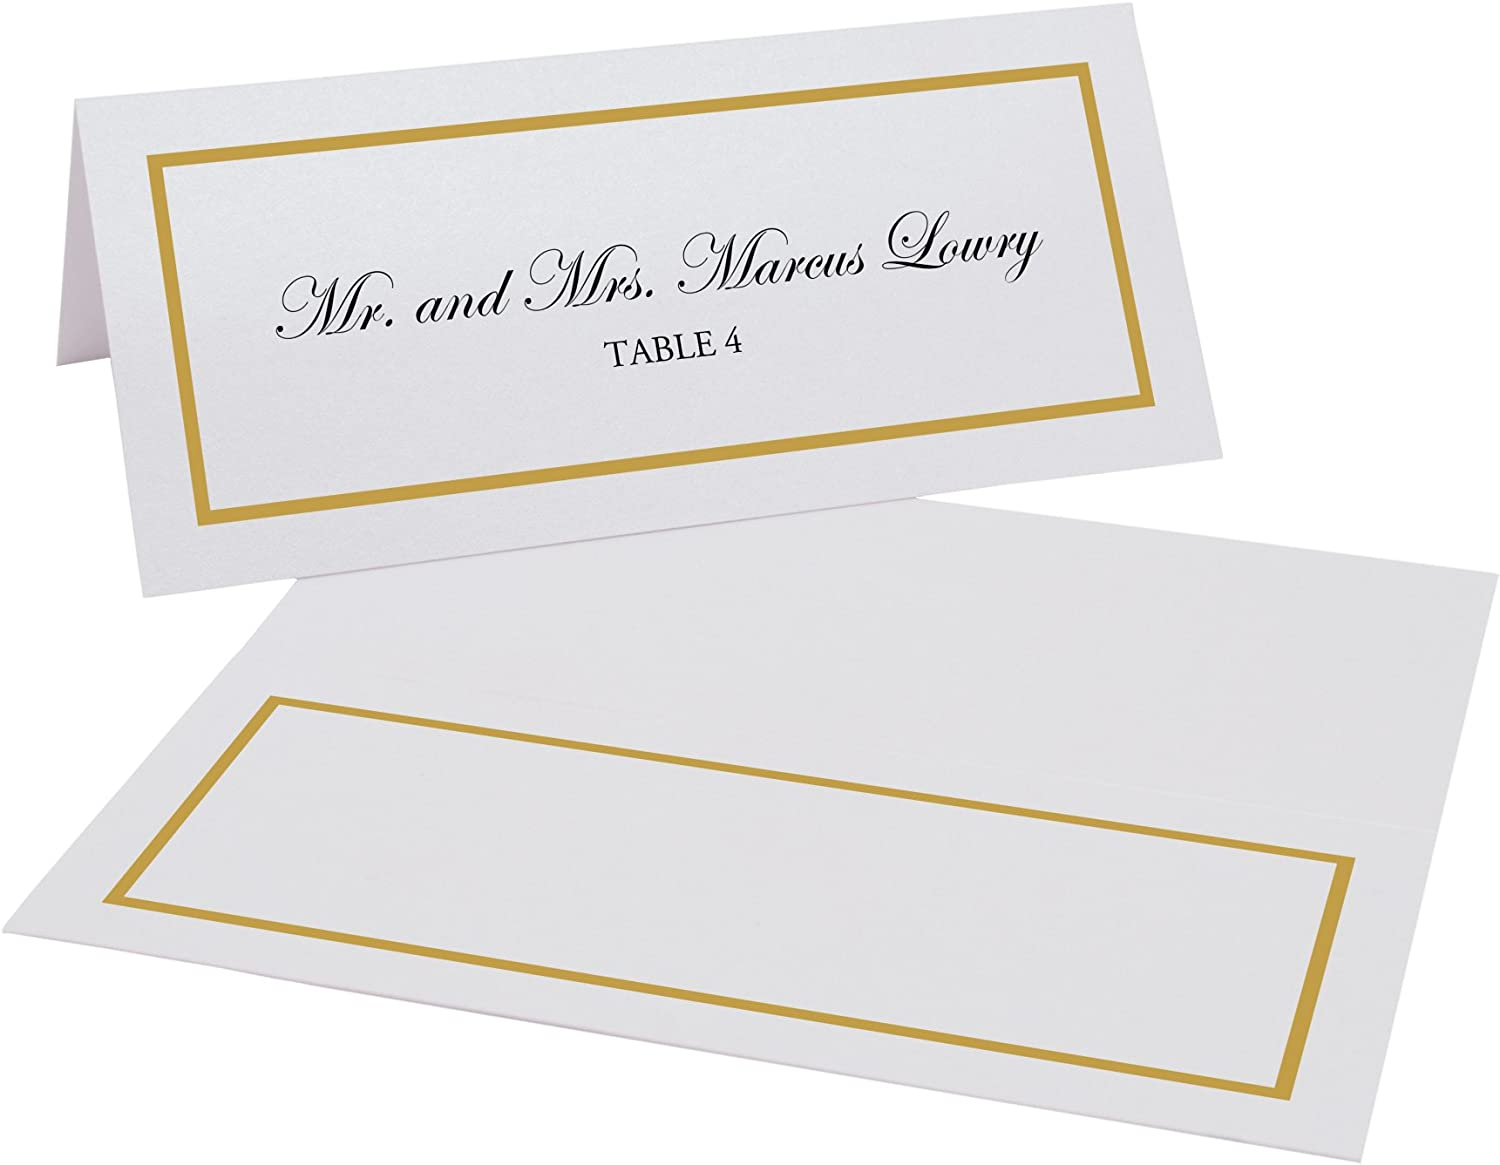 This is a picture of Printable Name Cards intended for thanksgiving